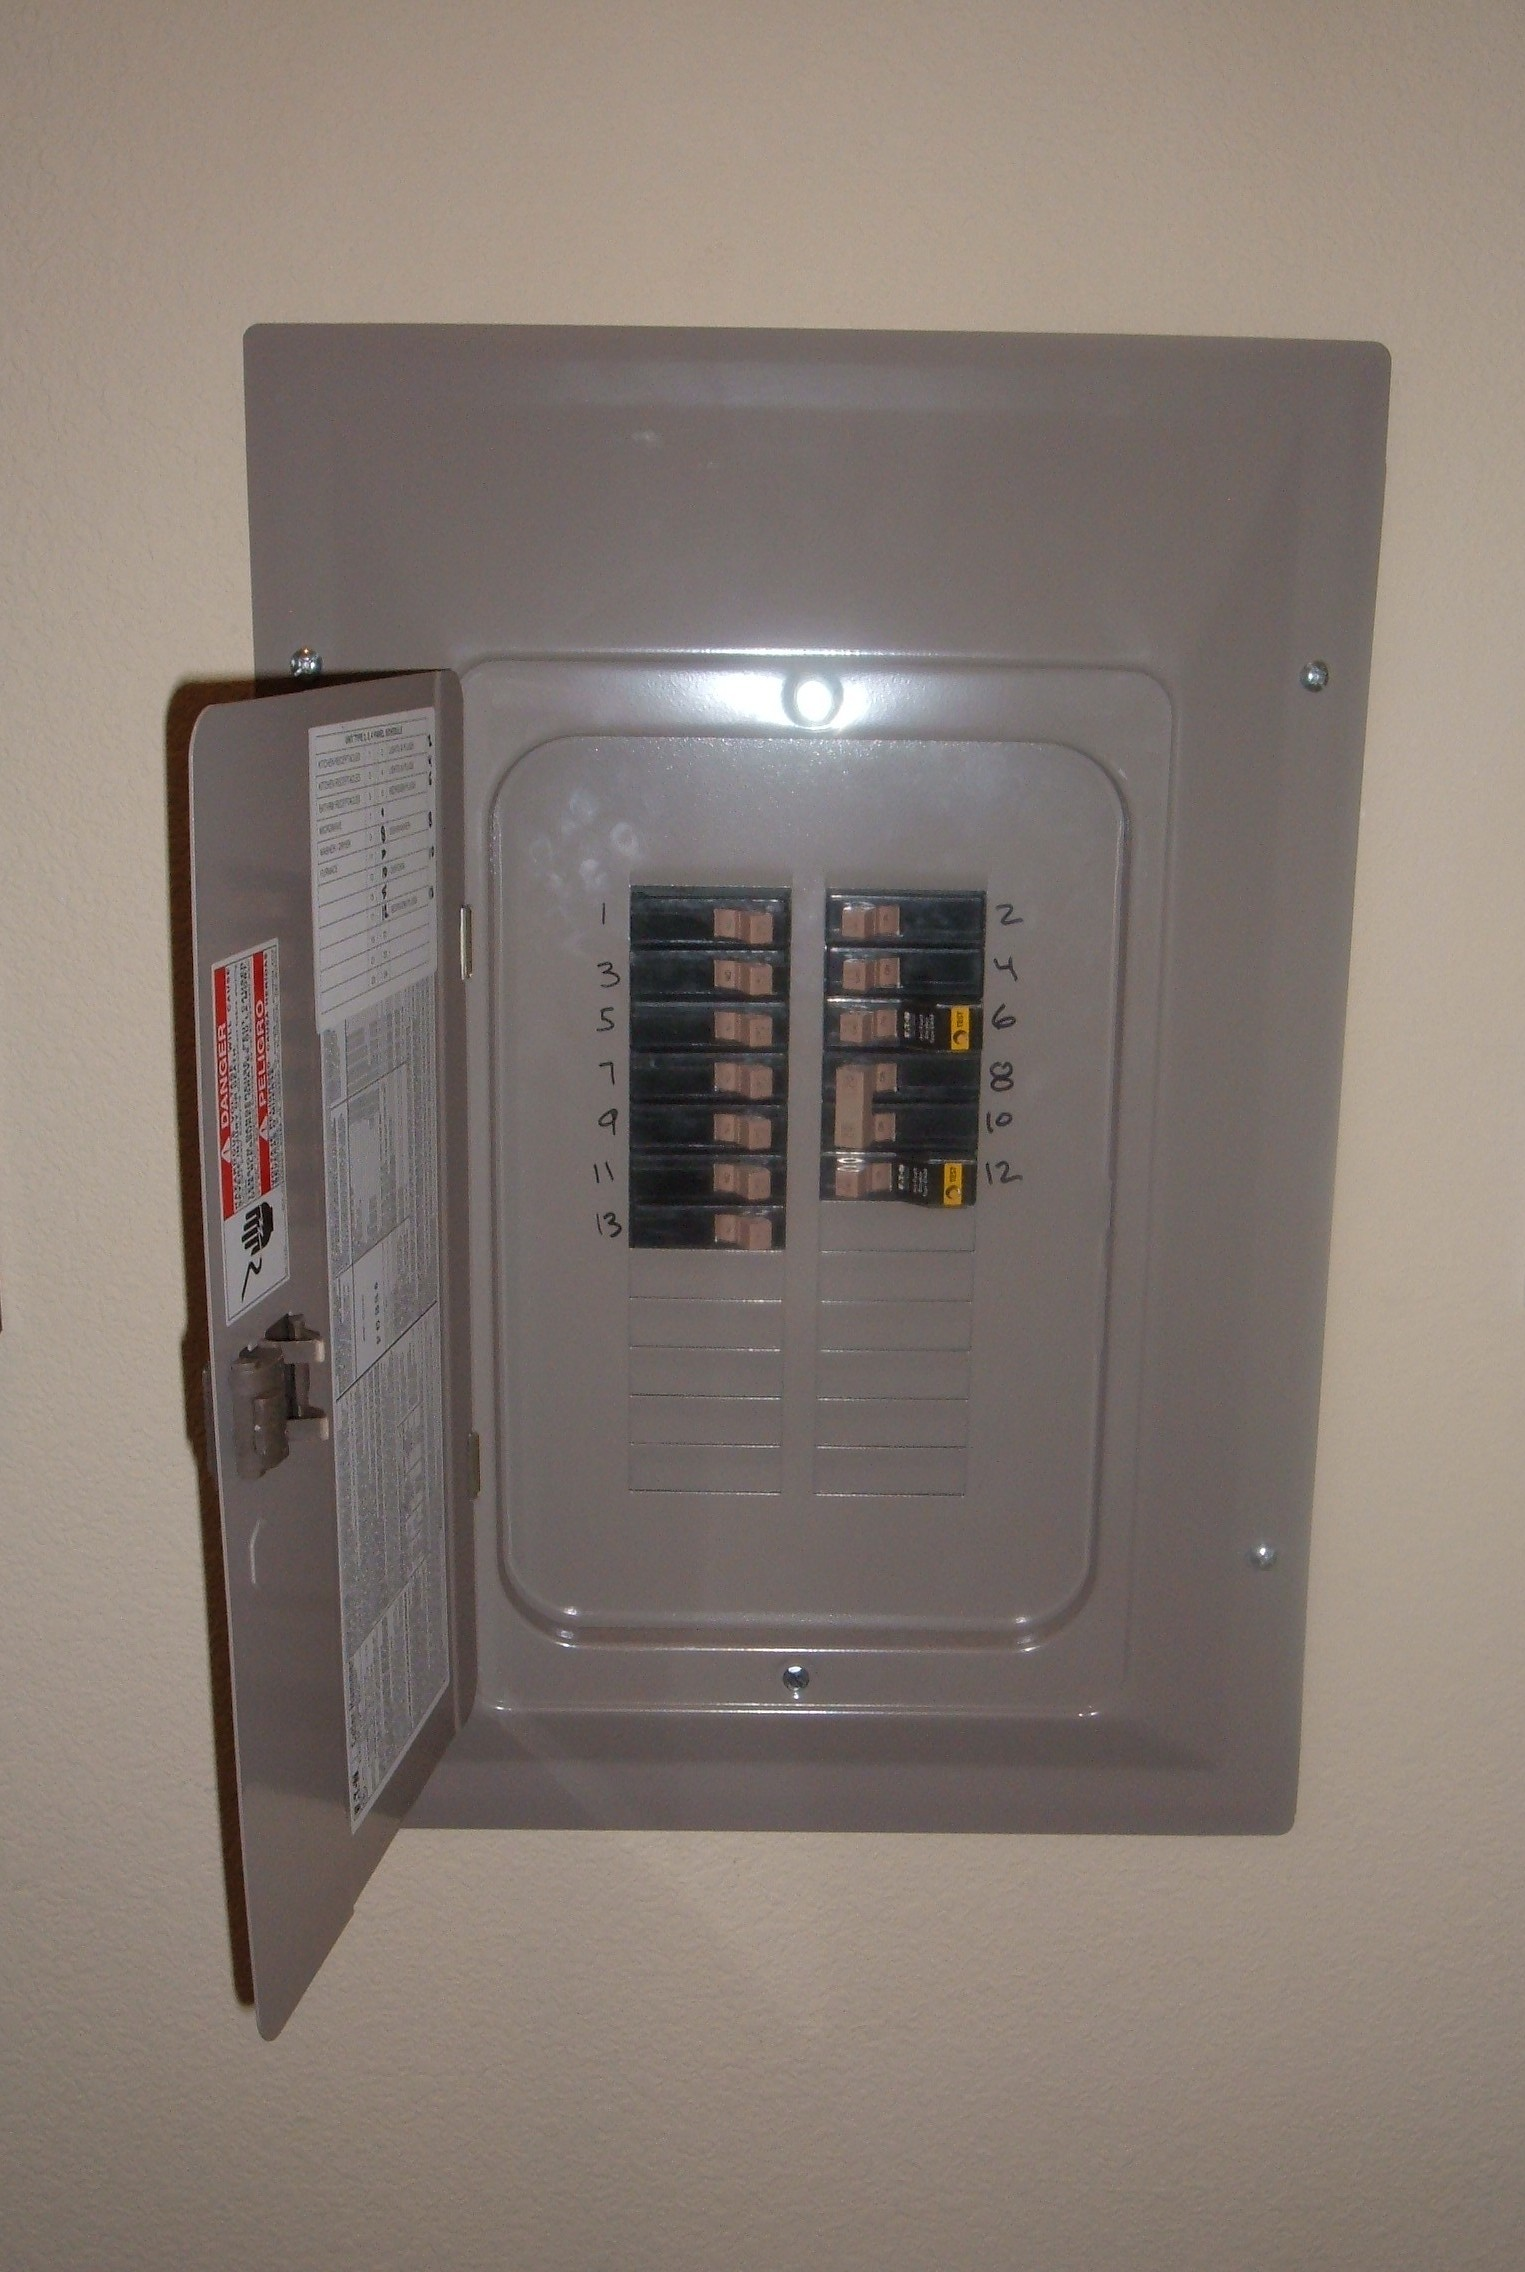 Circuit Breaker Cabinet What To Do If An Aquarium Leaks